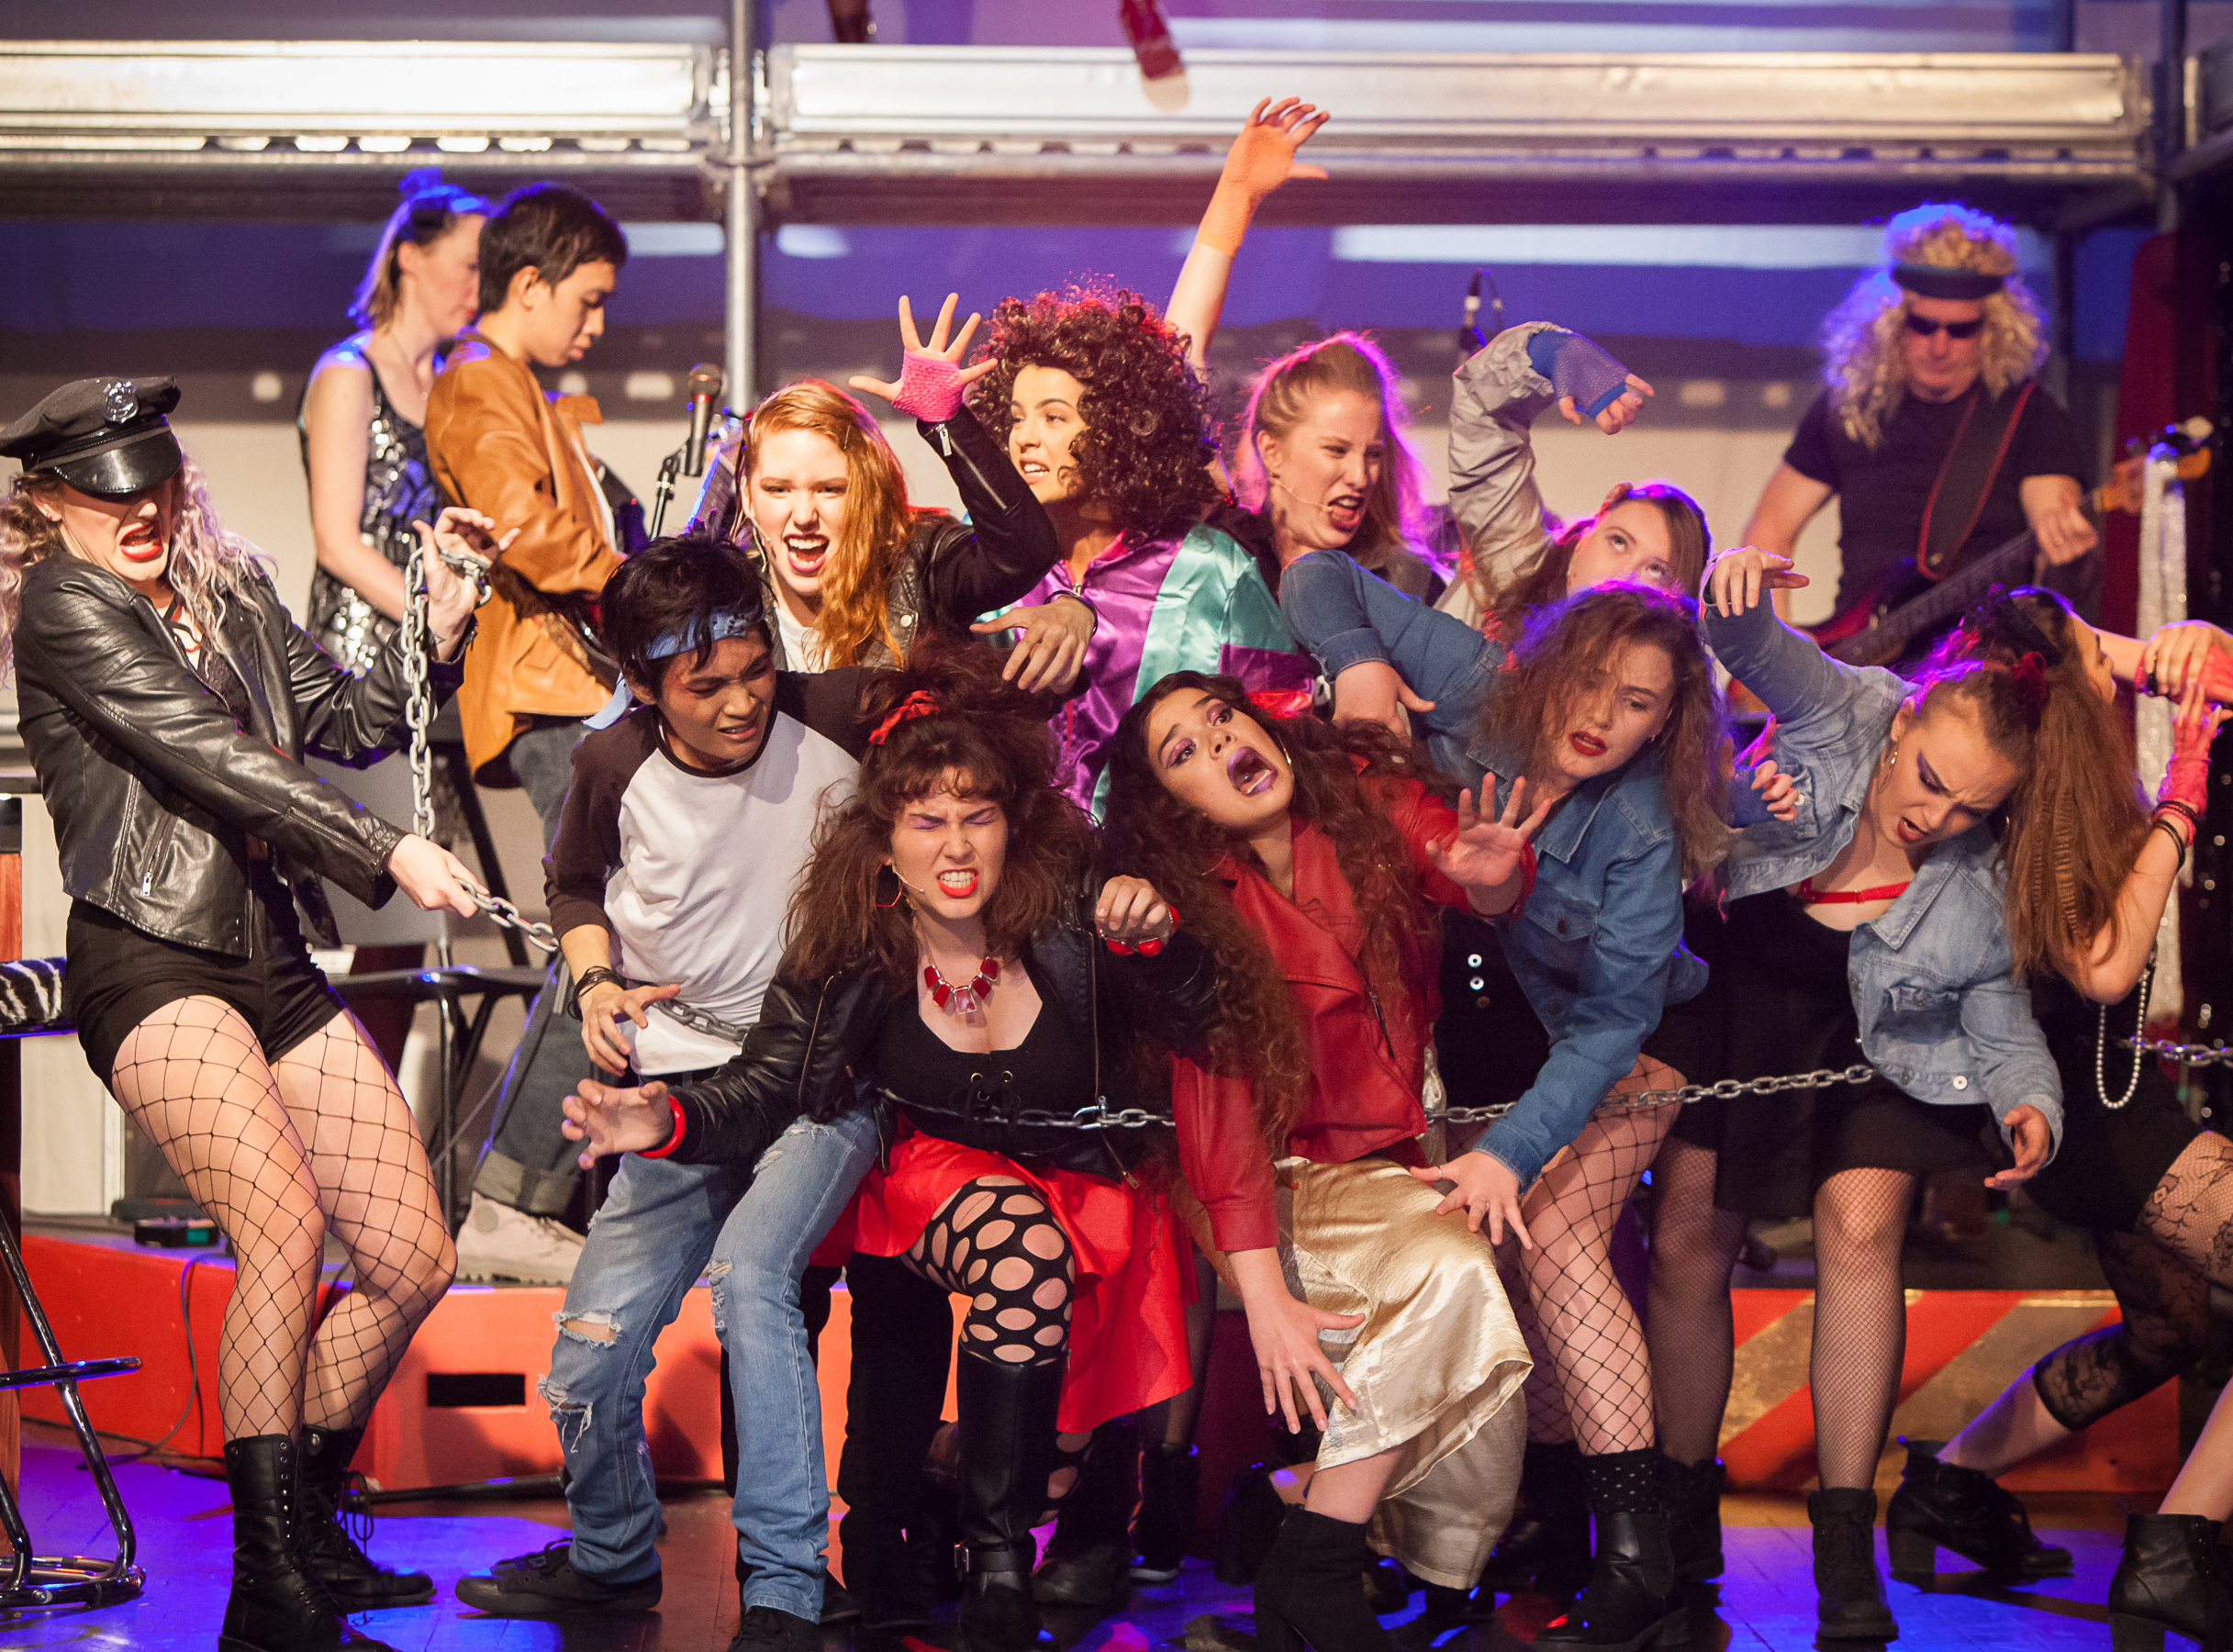 Rock of ages performance